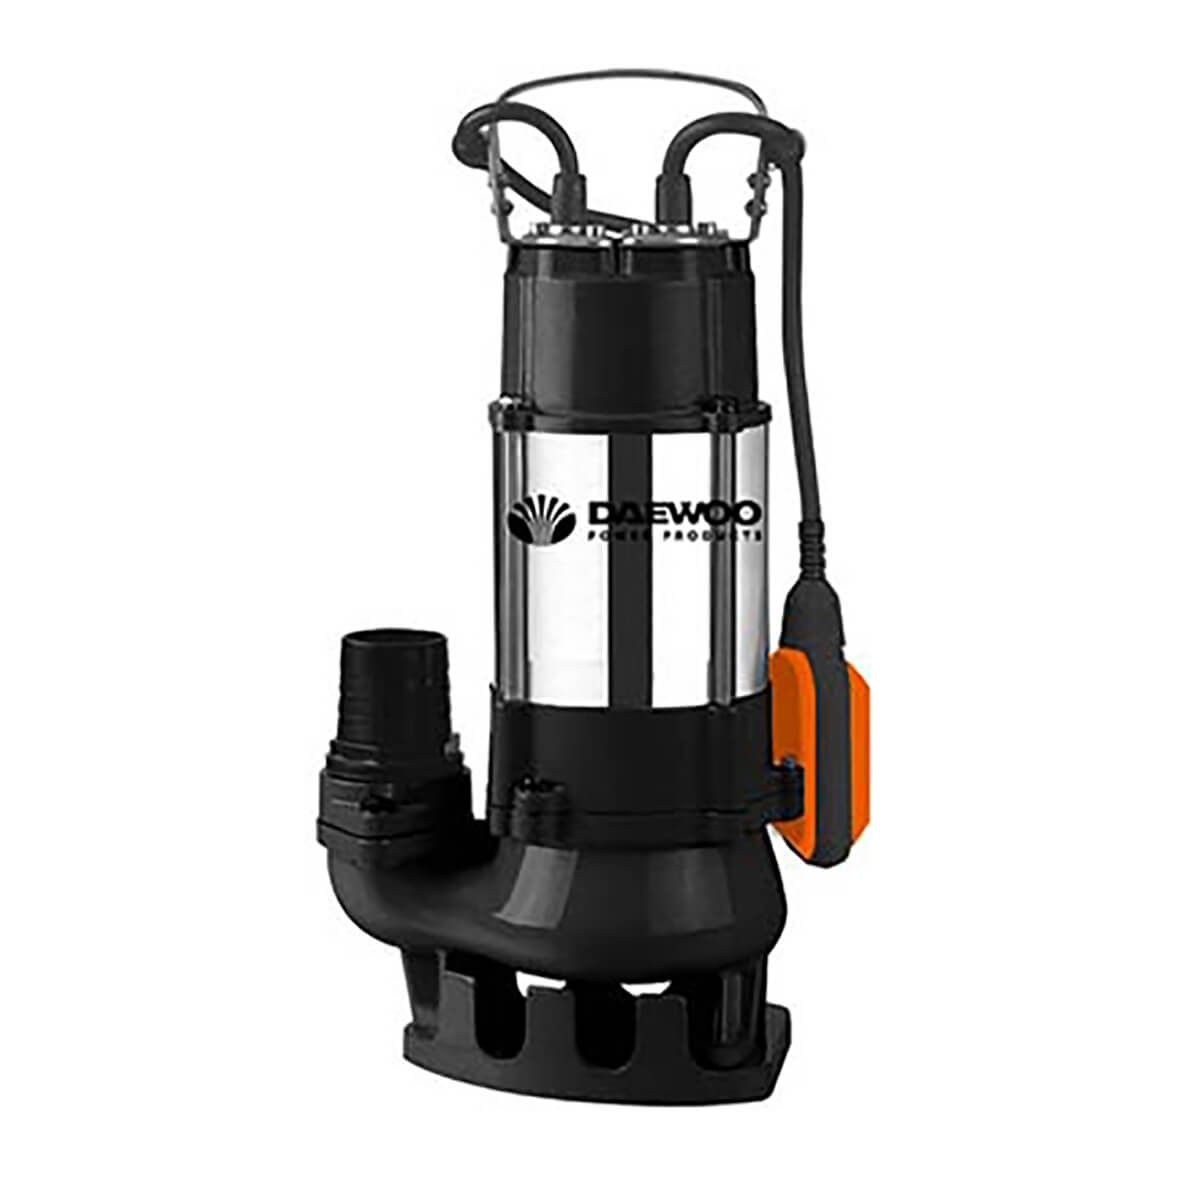 Daewoo Submersible pump 750W with Piggyback Mechanical Float Switch